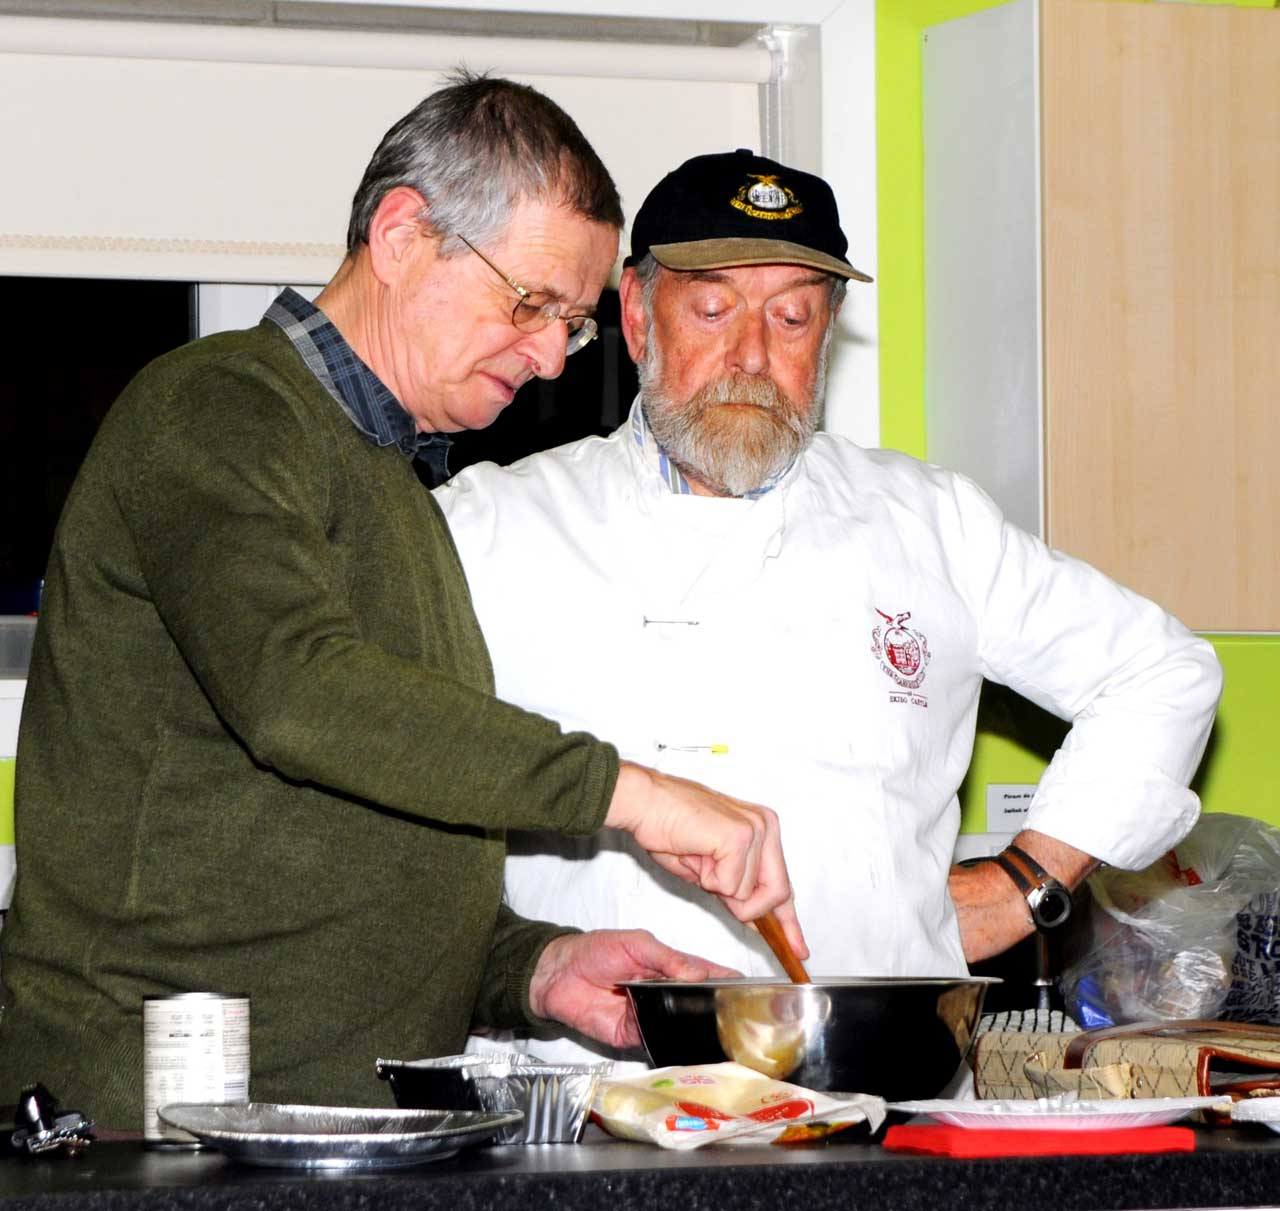 Photo: Cooking up a storm at heart group's event